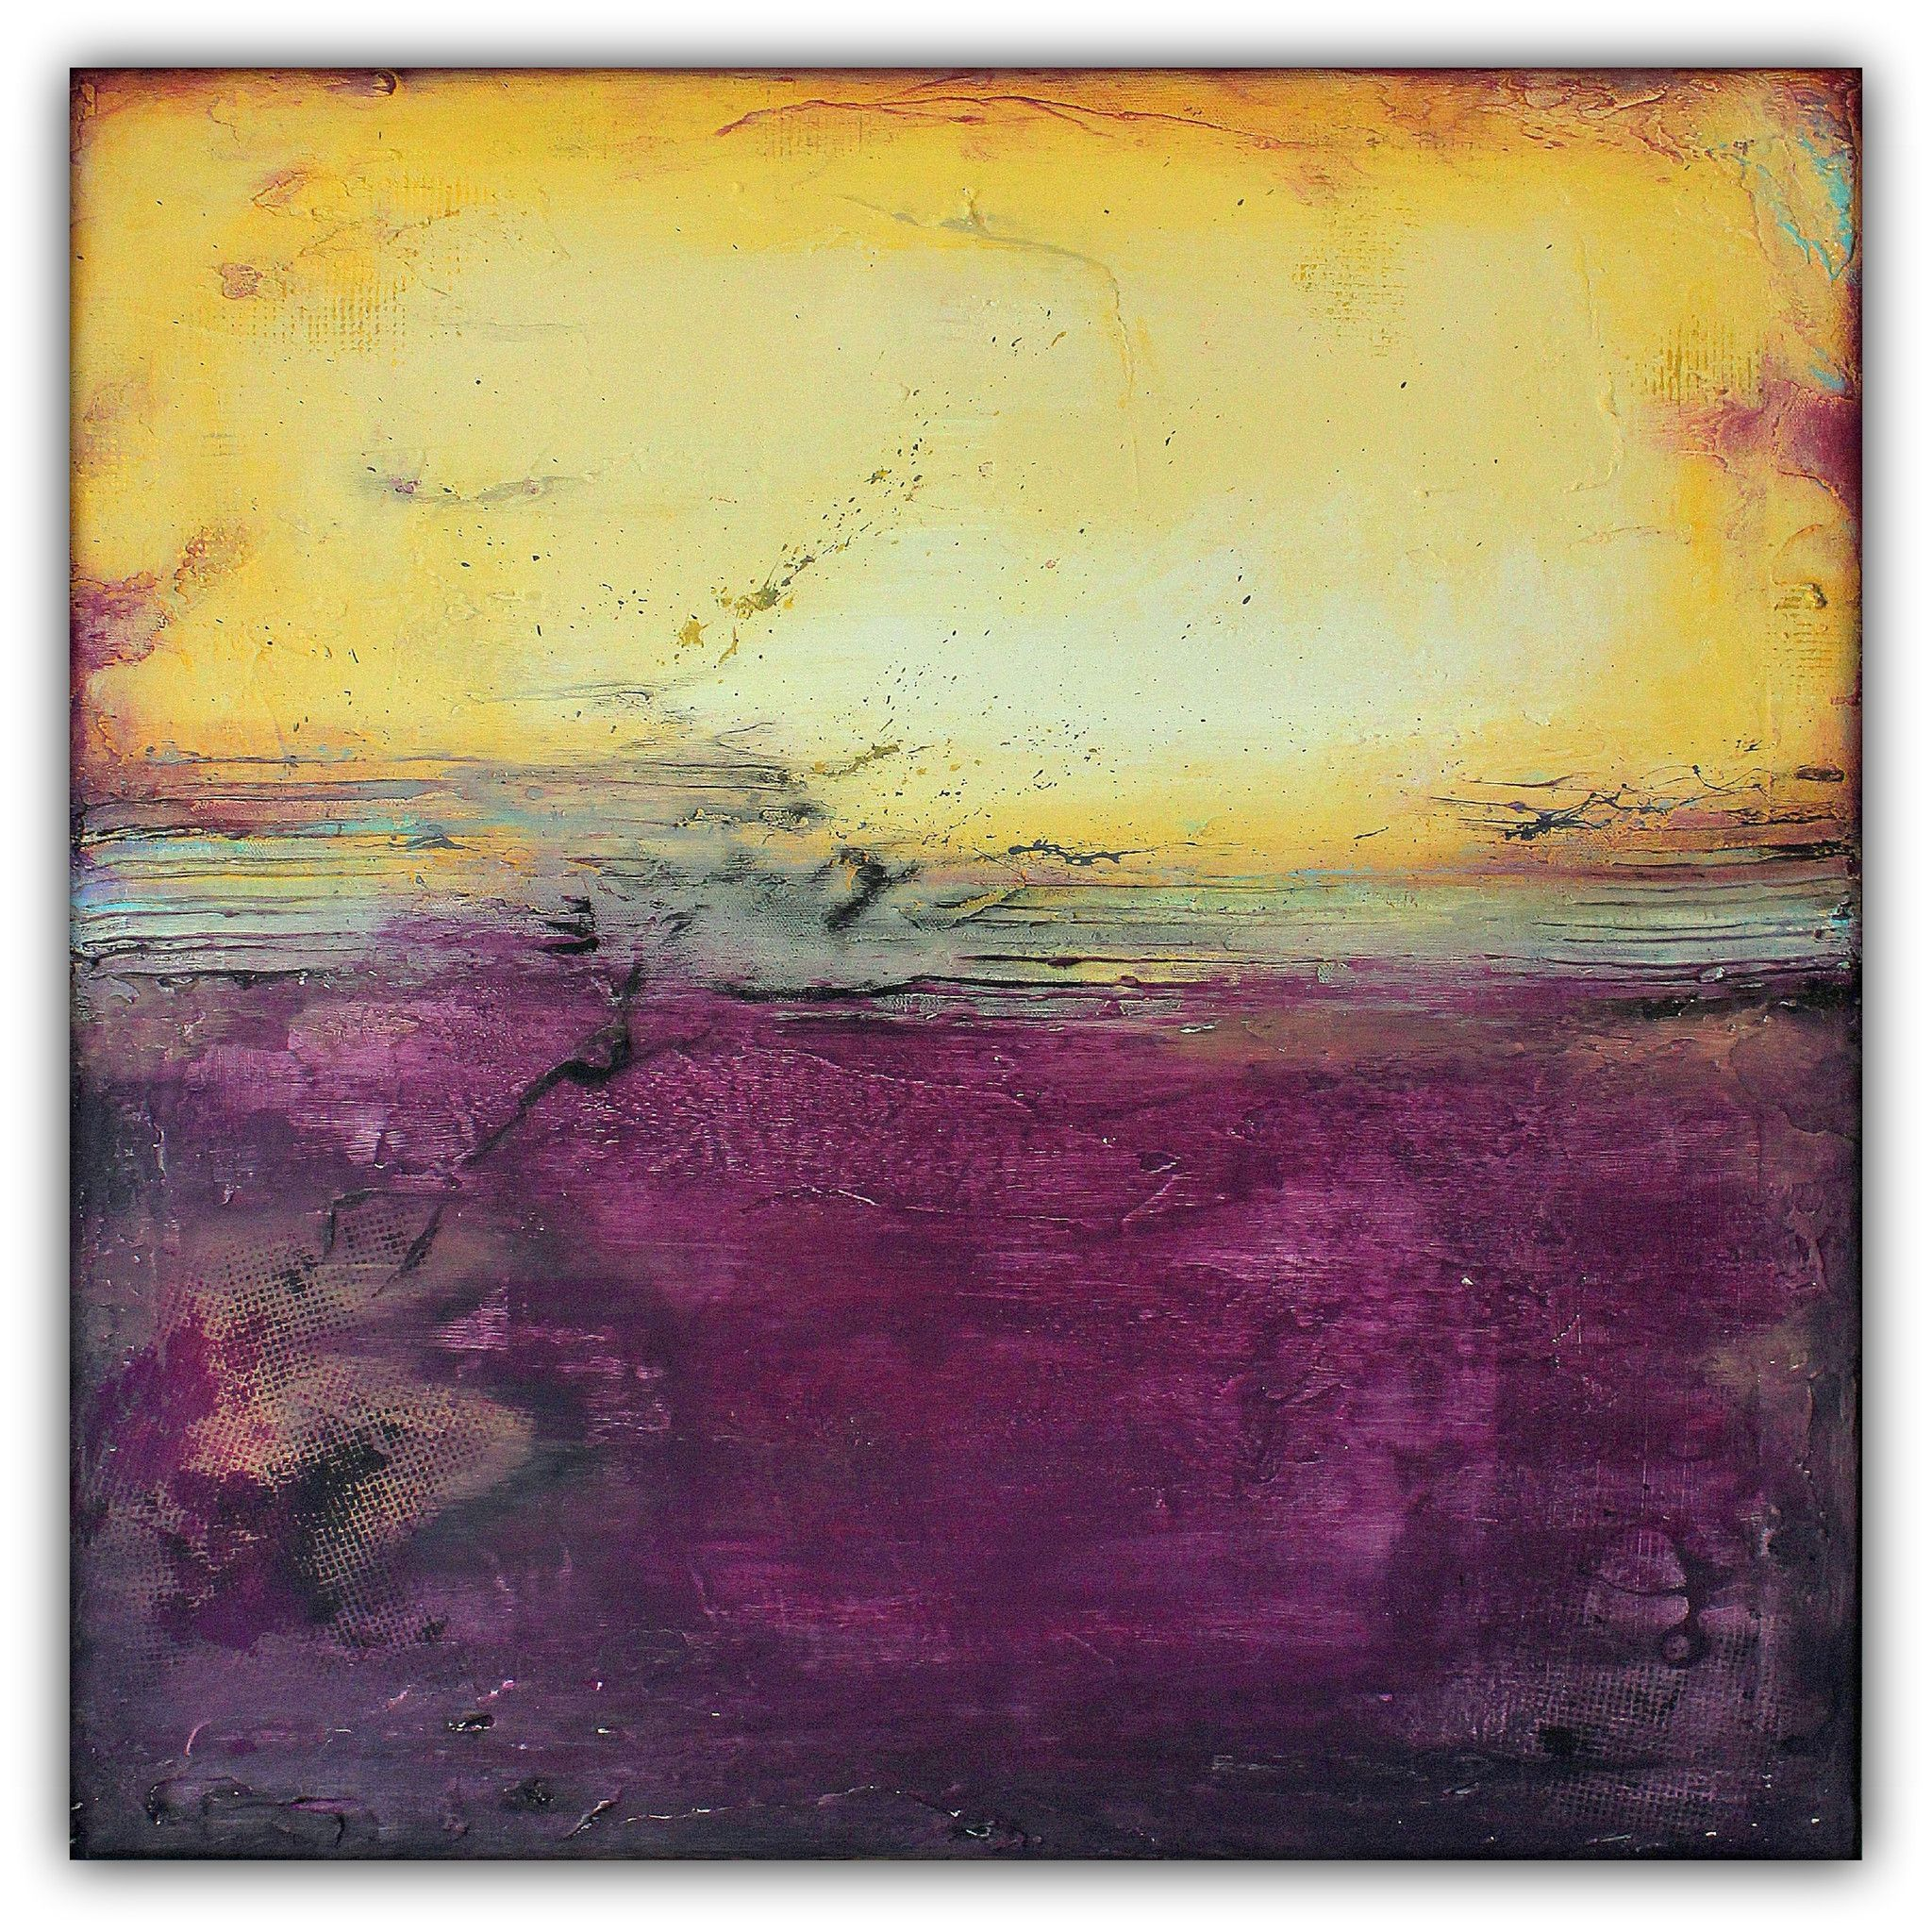 Pin by Rachael on Art in 2018 | Pinterest | Paintings, Mixed media ...